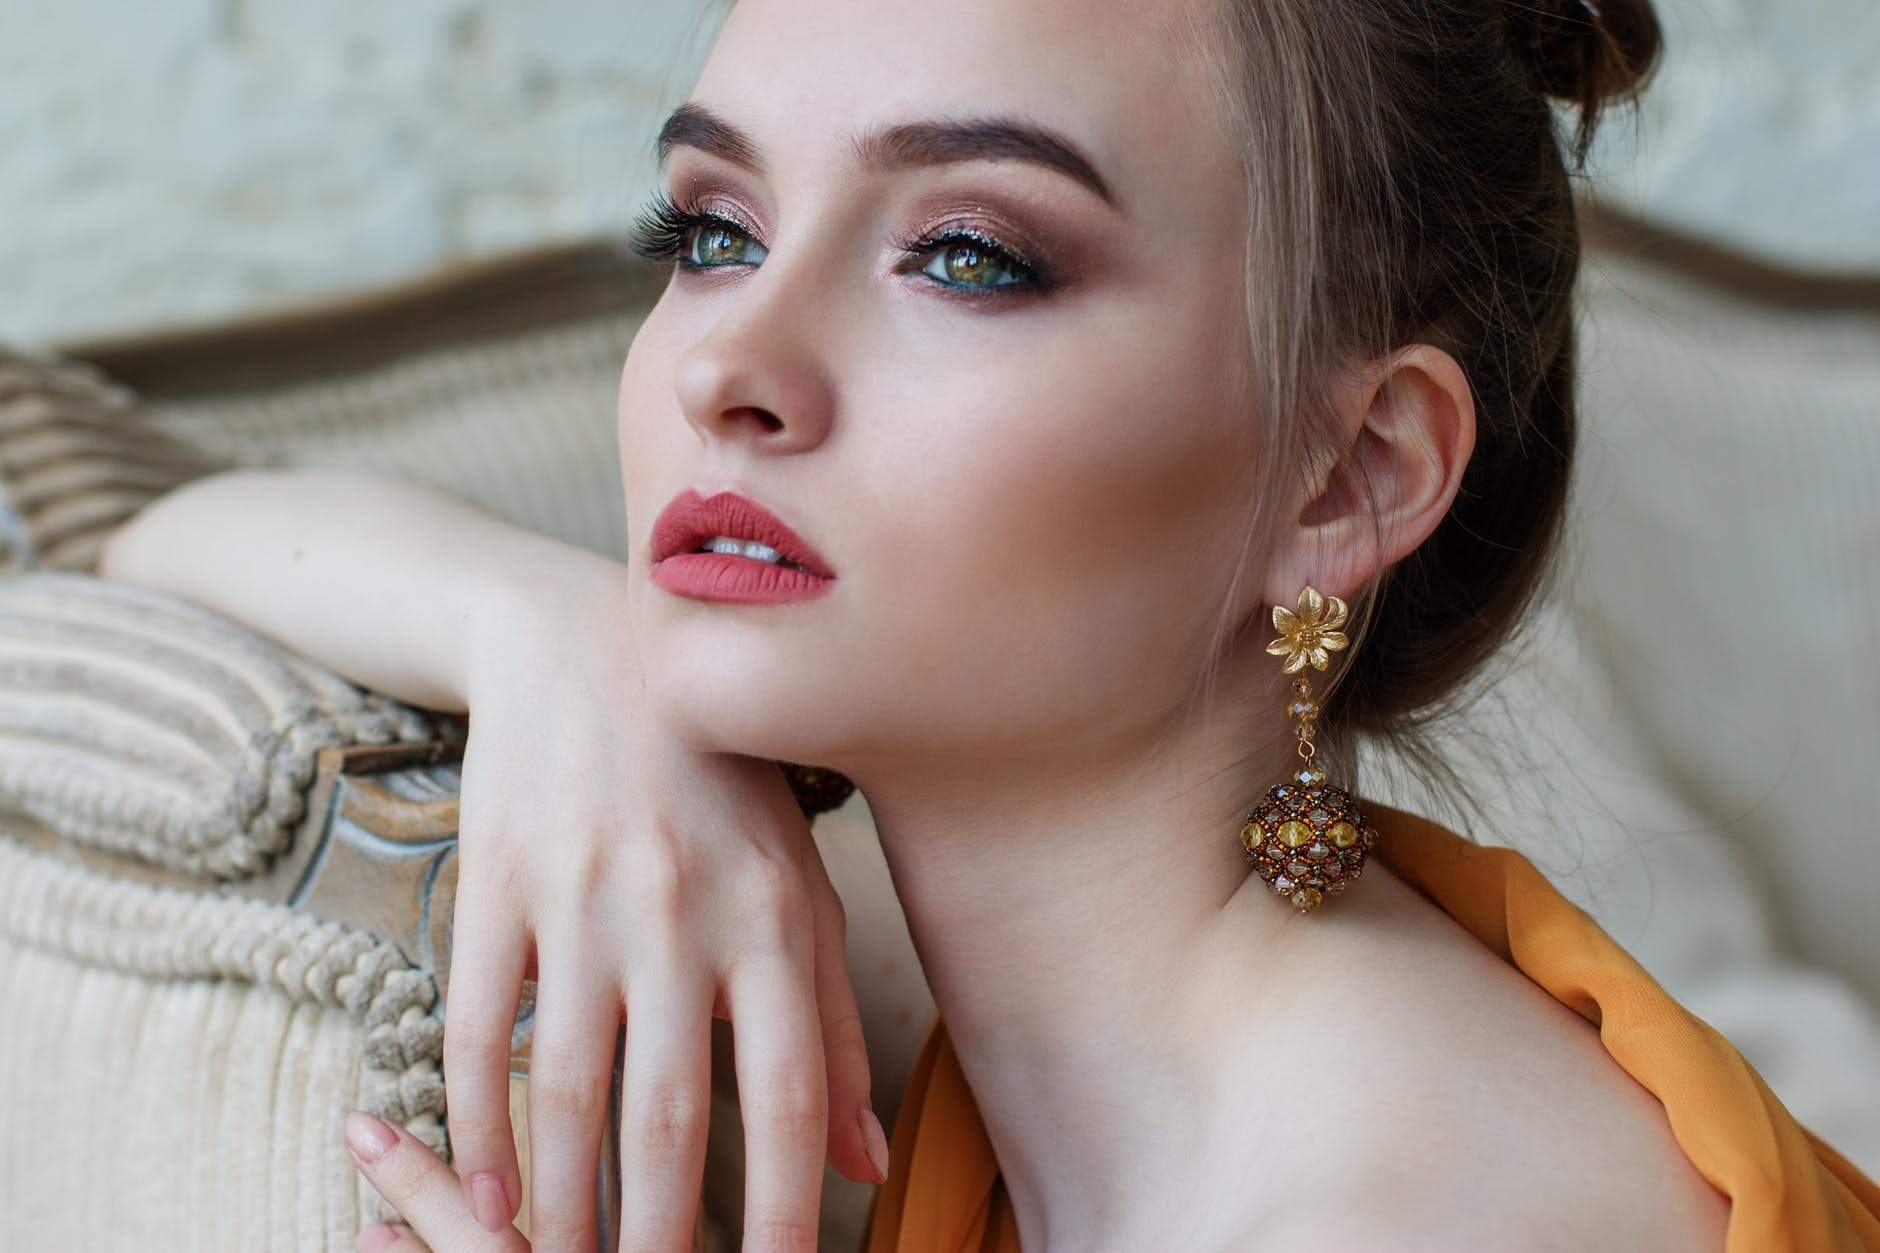 Lady with glamorous makeup and a mustard outfit